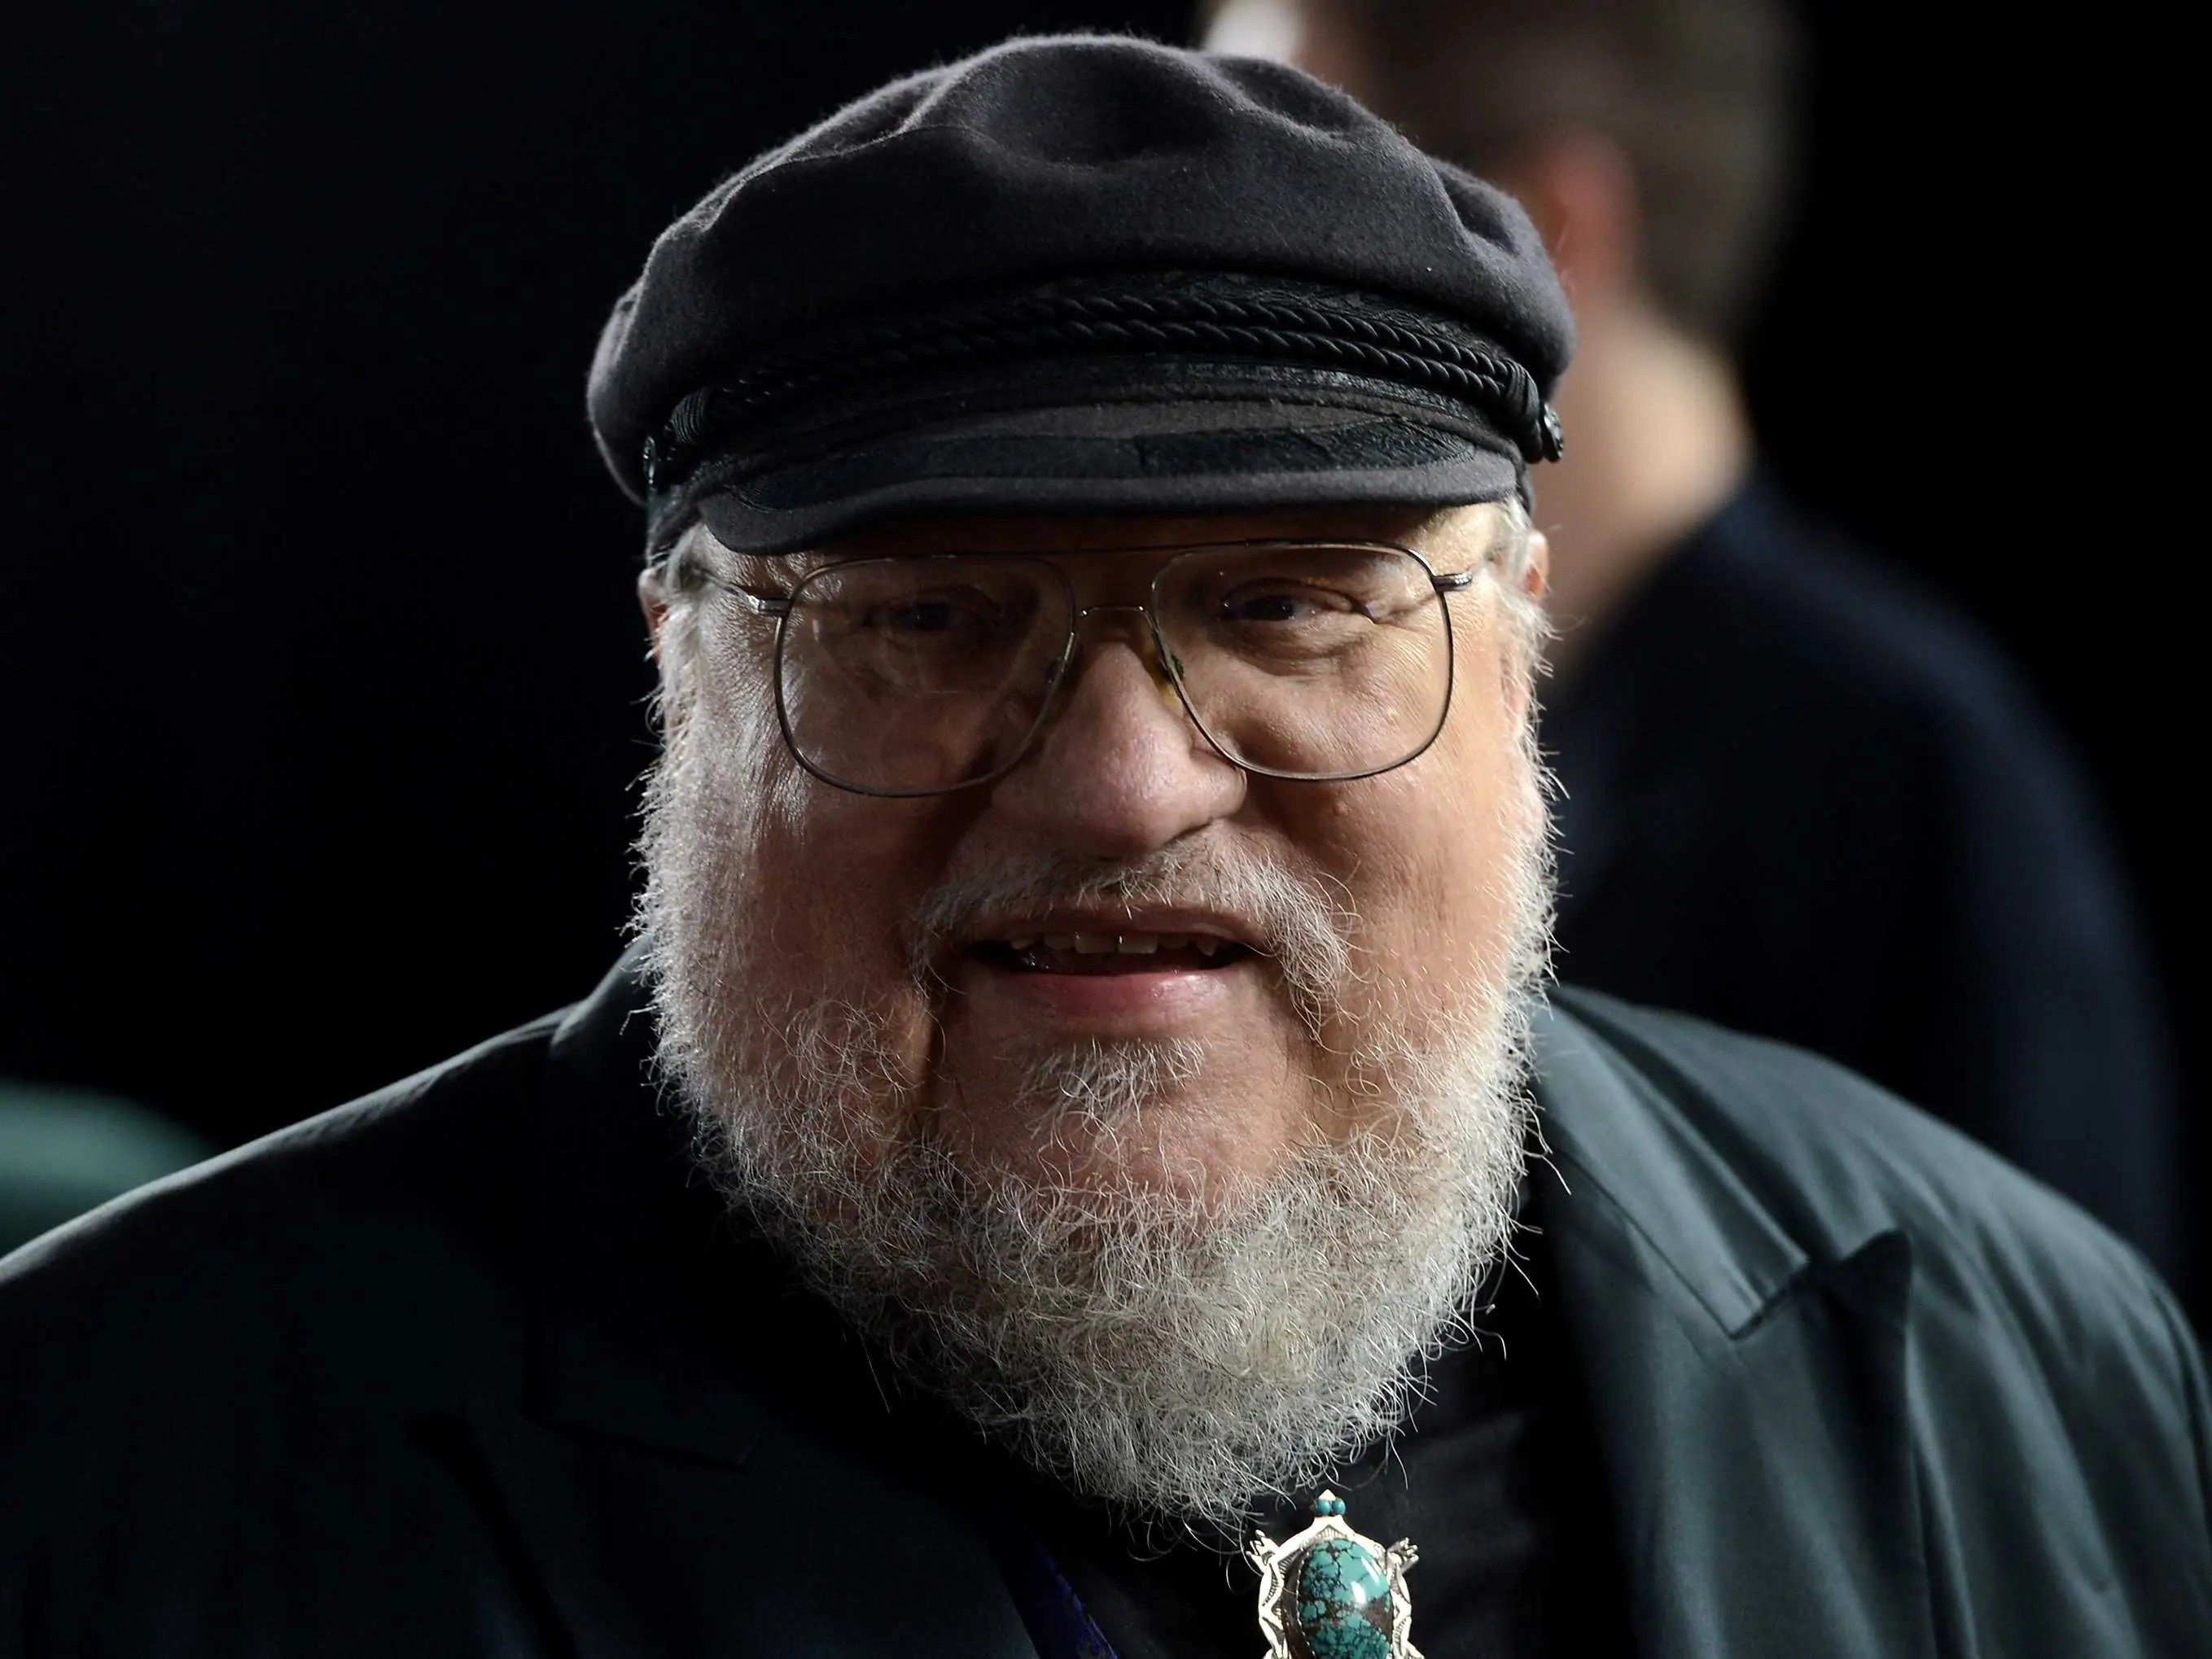 George Rr Martin Libros Game Of Thrones 39game Of Thrones 39 Creator George R R Martin Is Dabbling